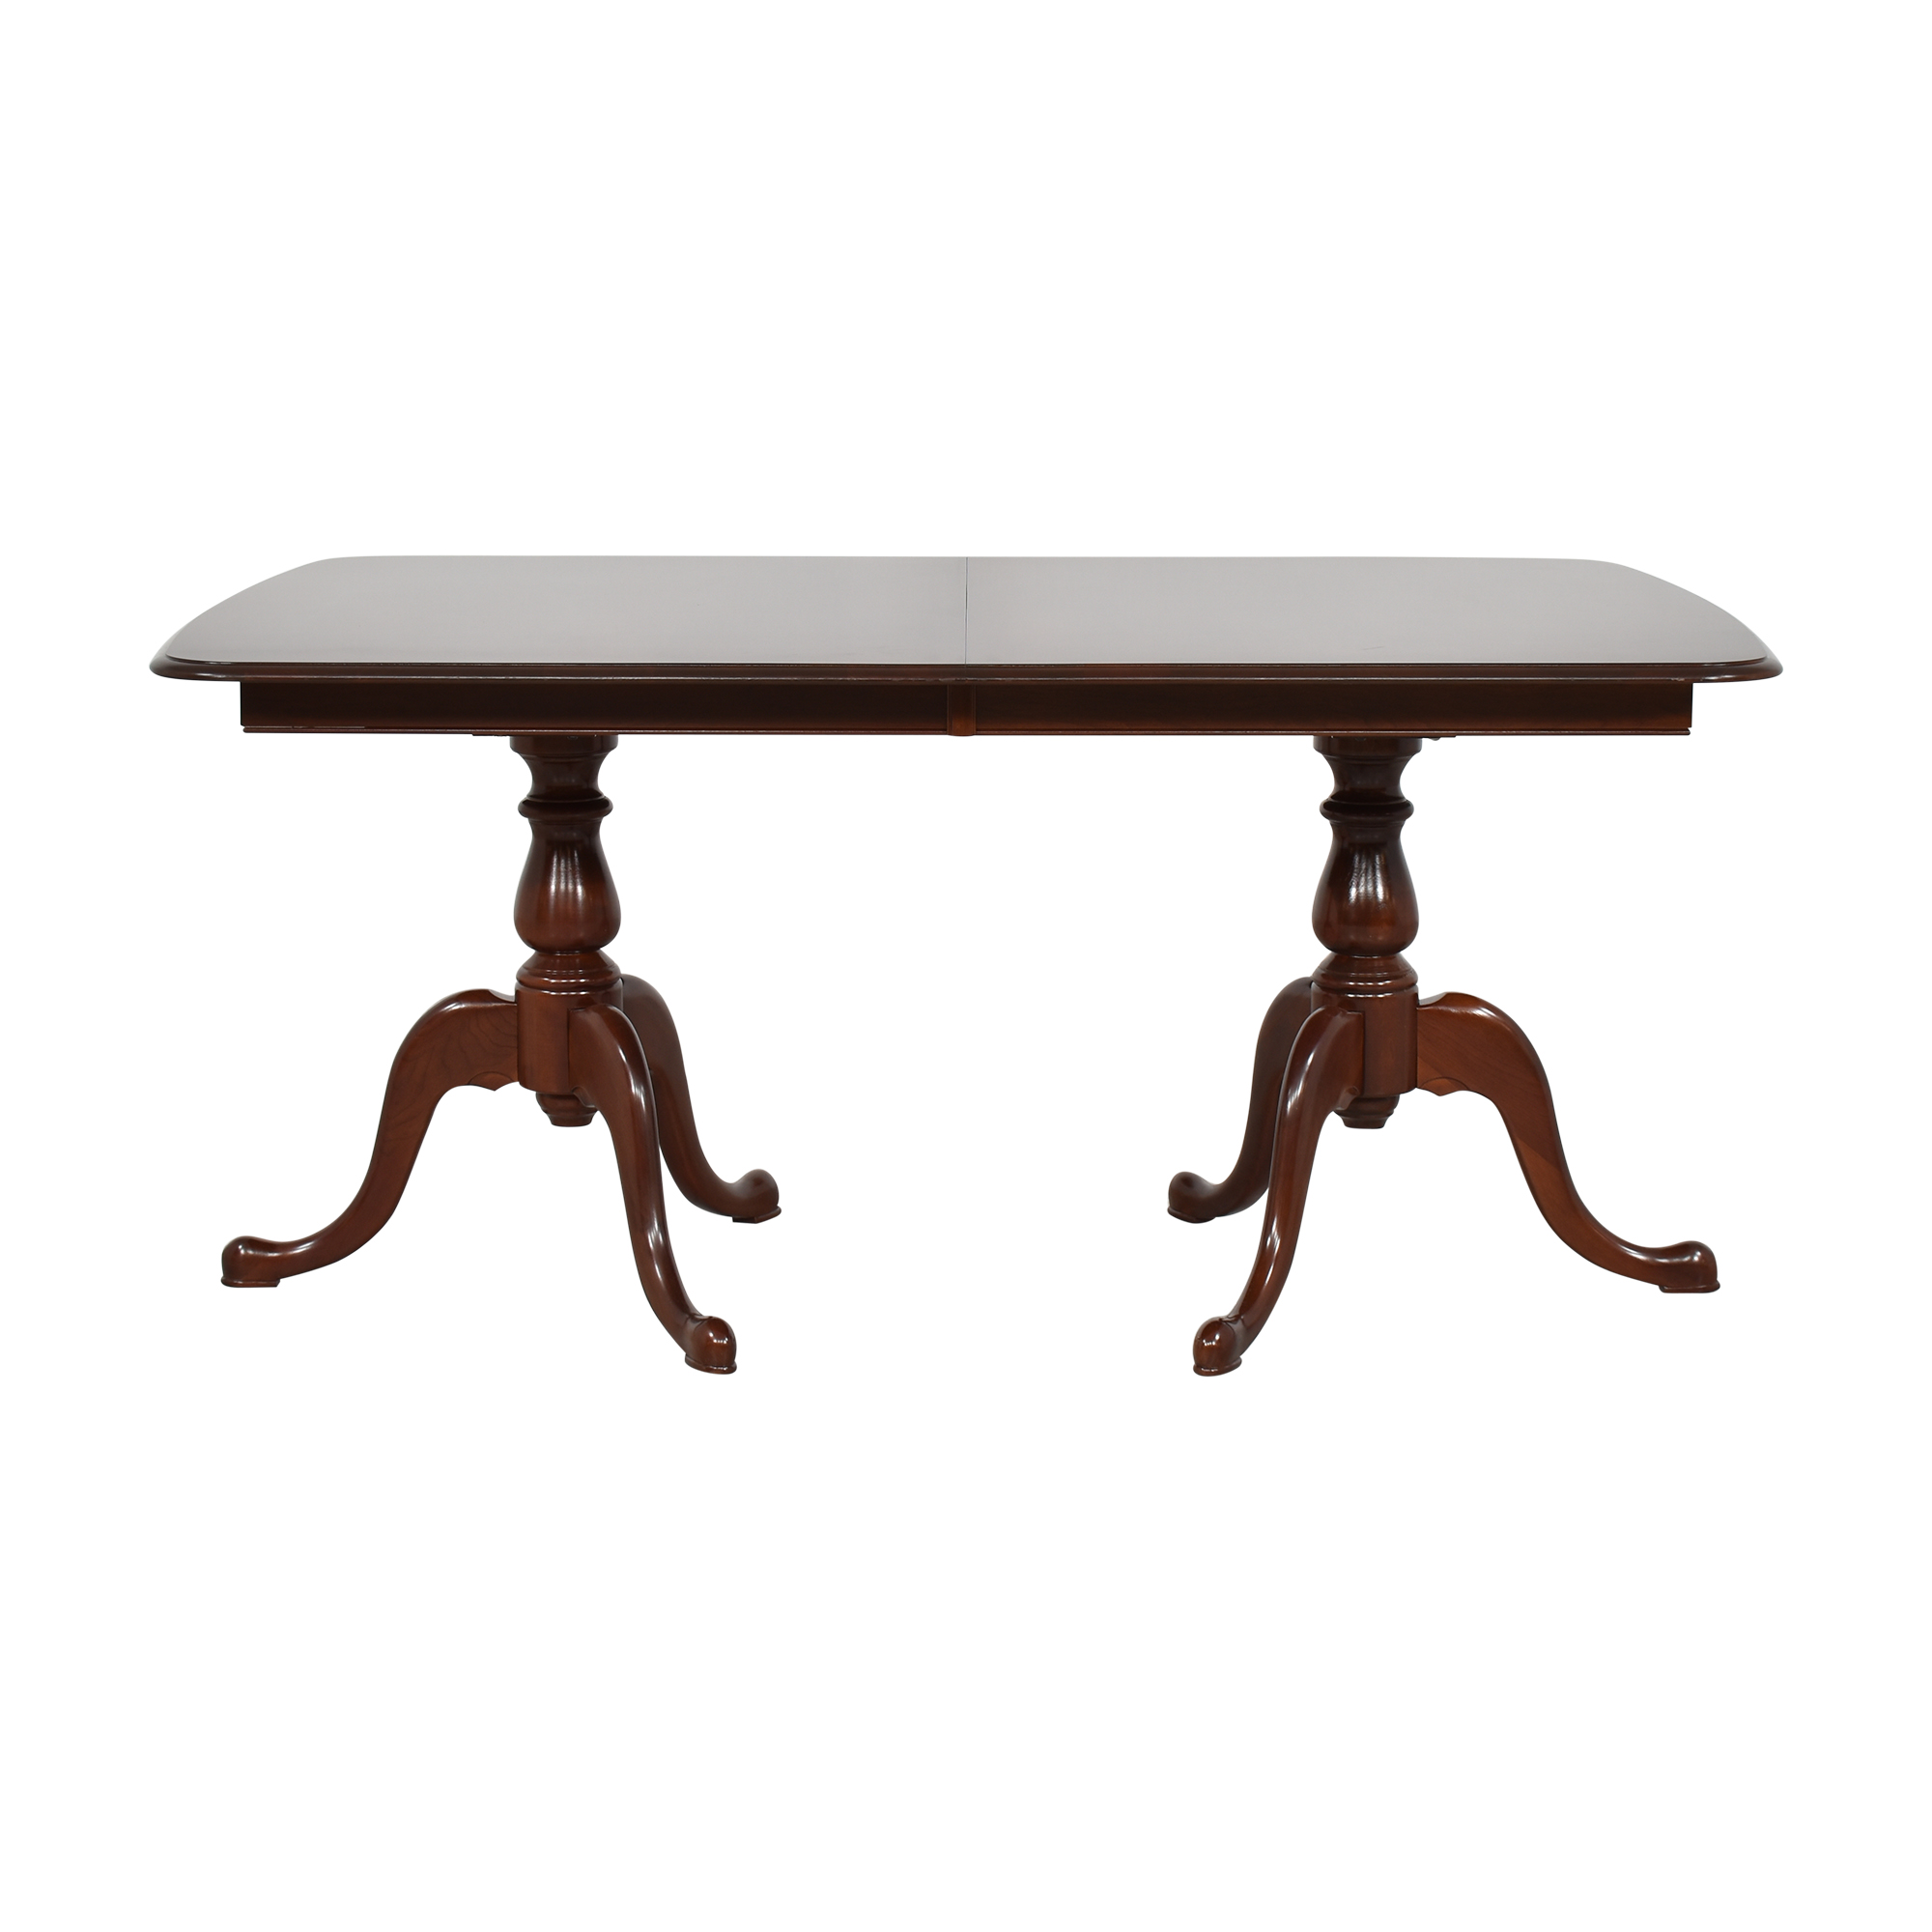 The Colonial Furniture Company Extendable Dining Table / Tables